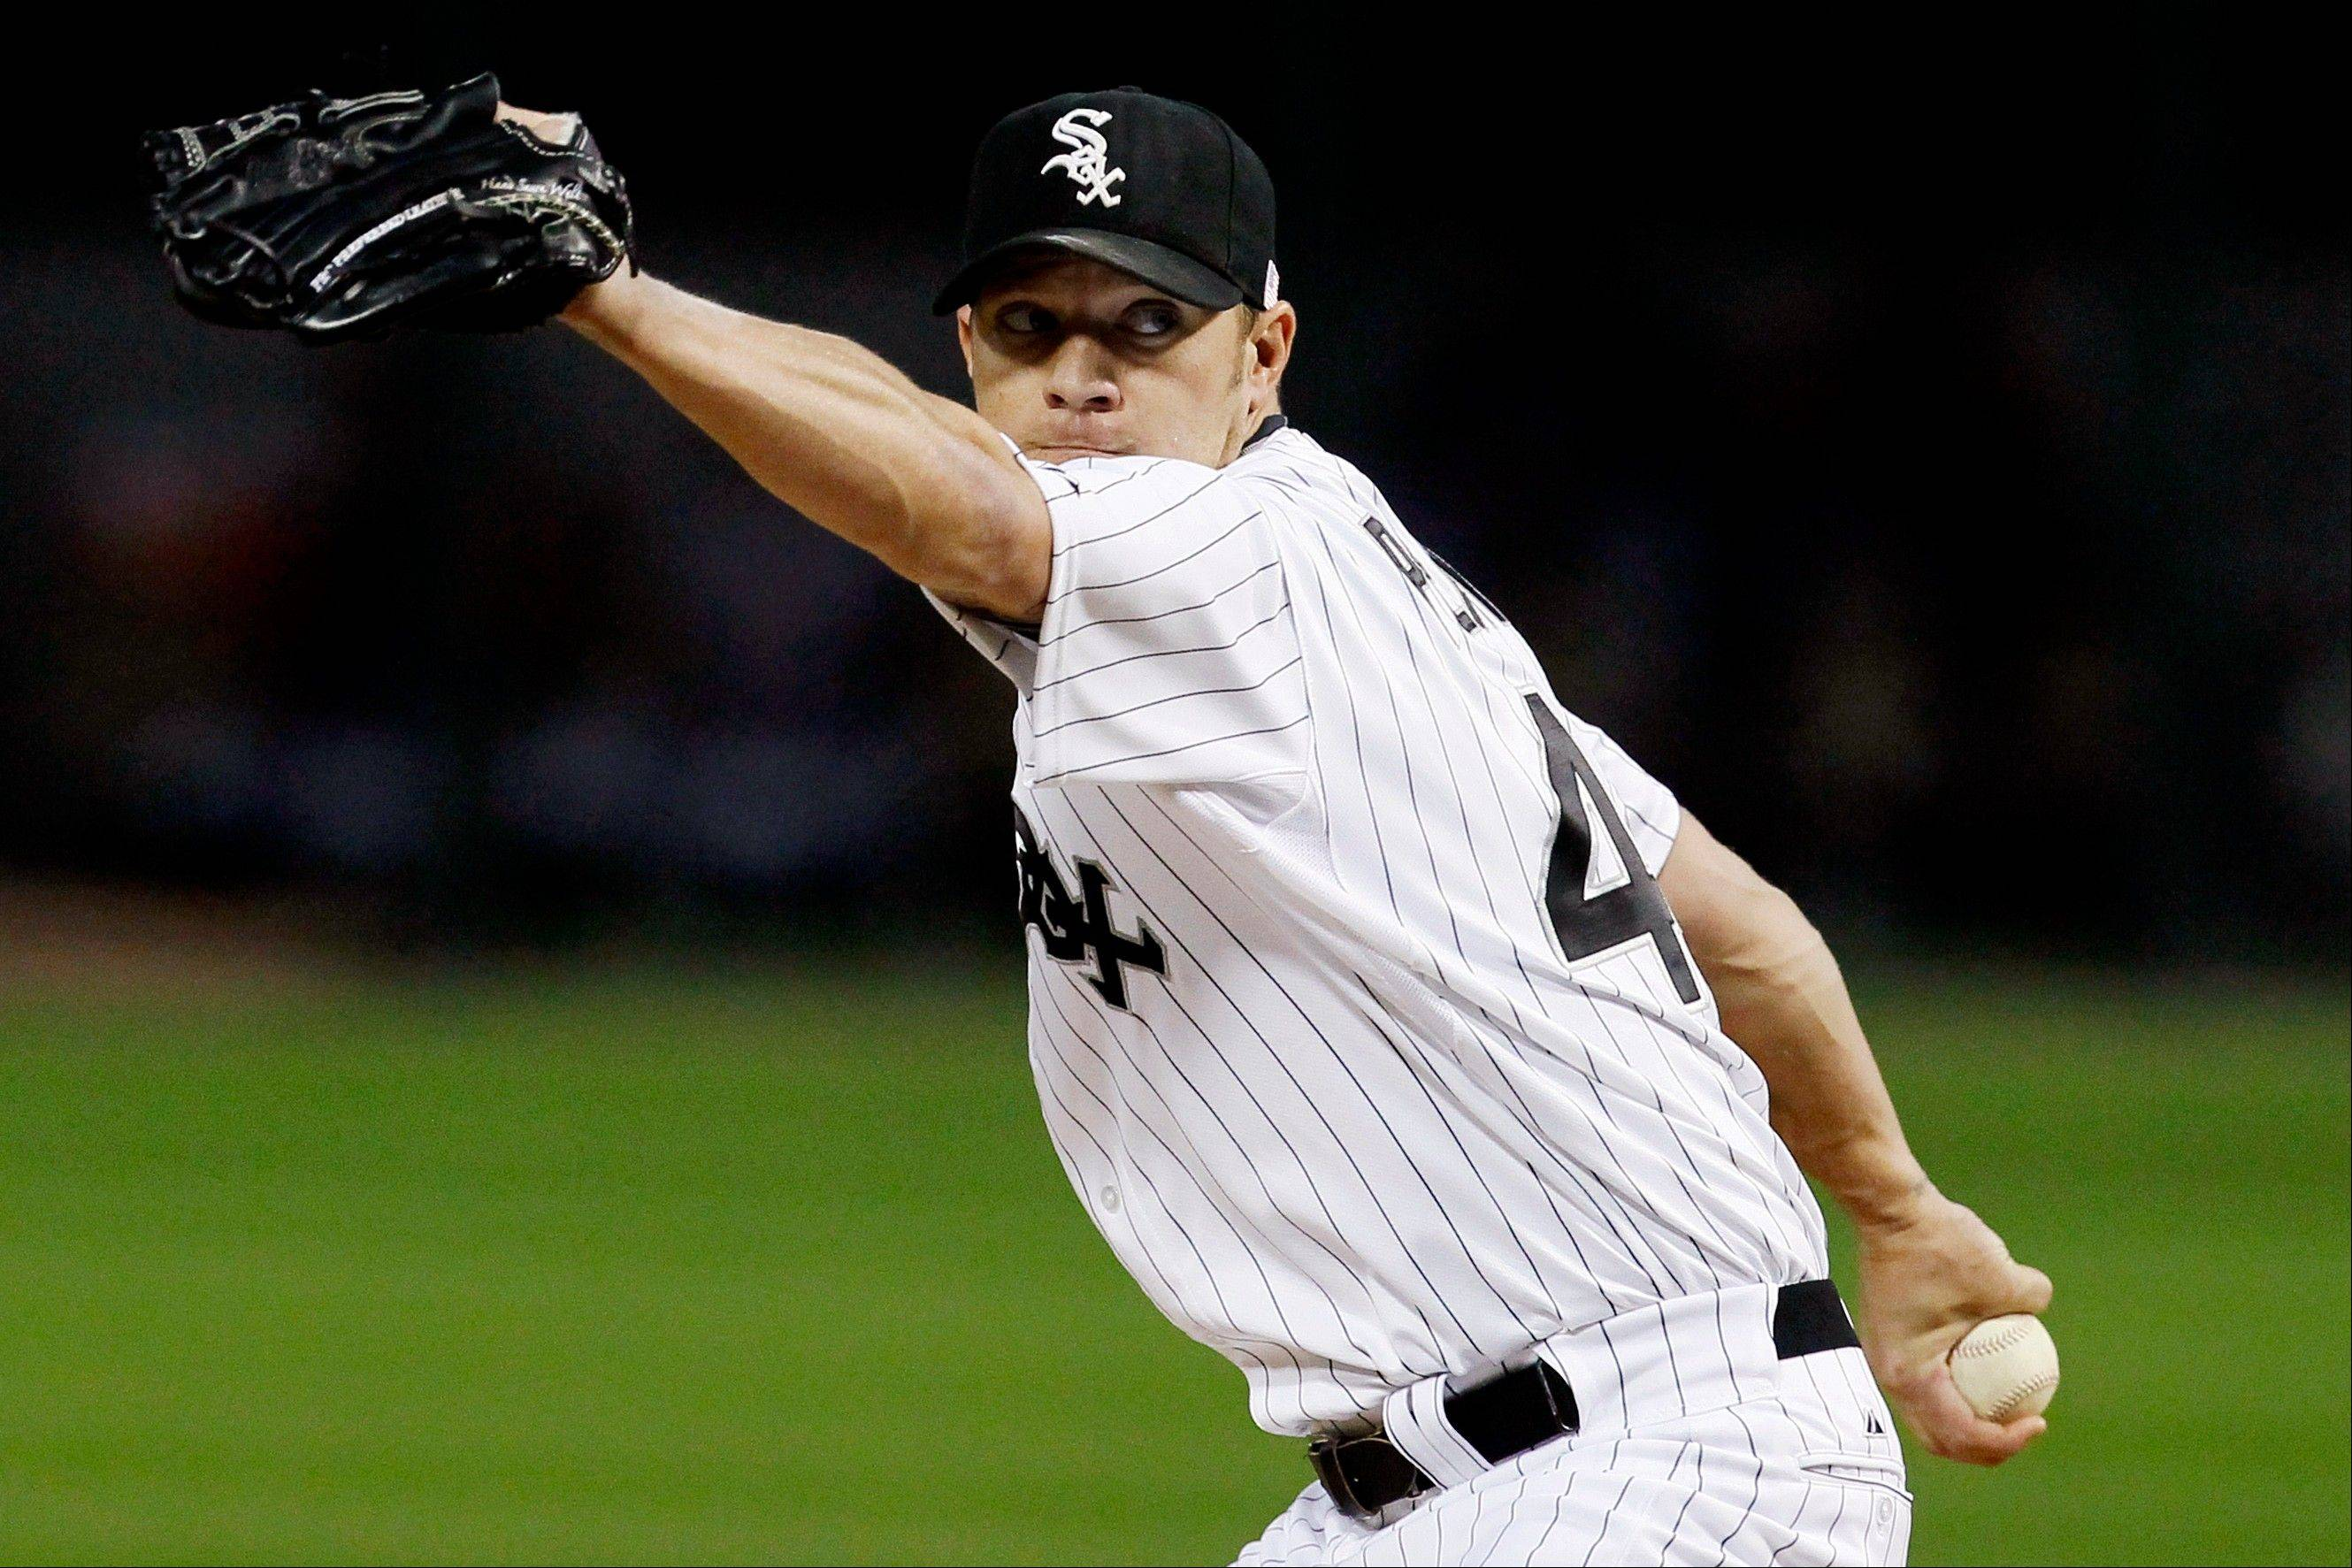 Jake Peavy had a solid season in 2012, compiling an 11-12 record with a 3.37 ERA. He will be a free agent, but Sox GM Rick Hahn said Peavy would like to stay with the Sox if possible.